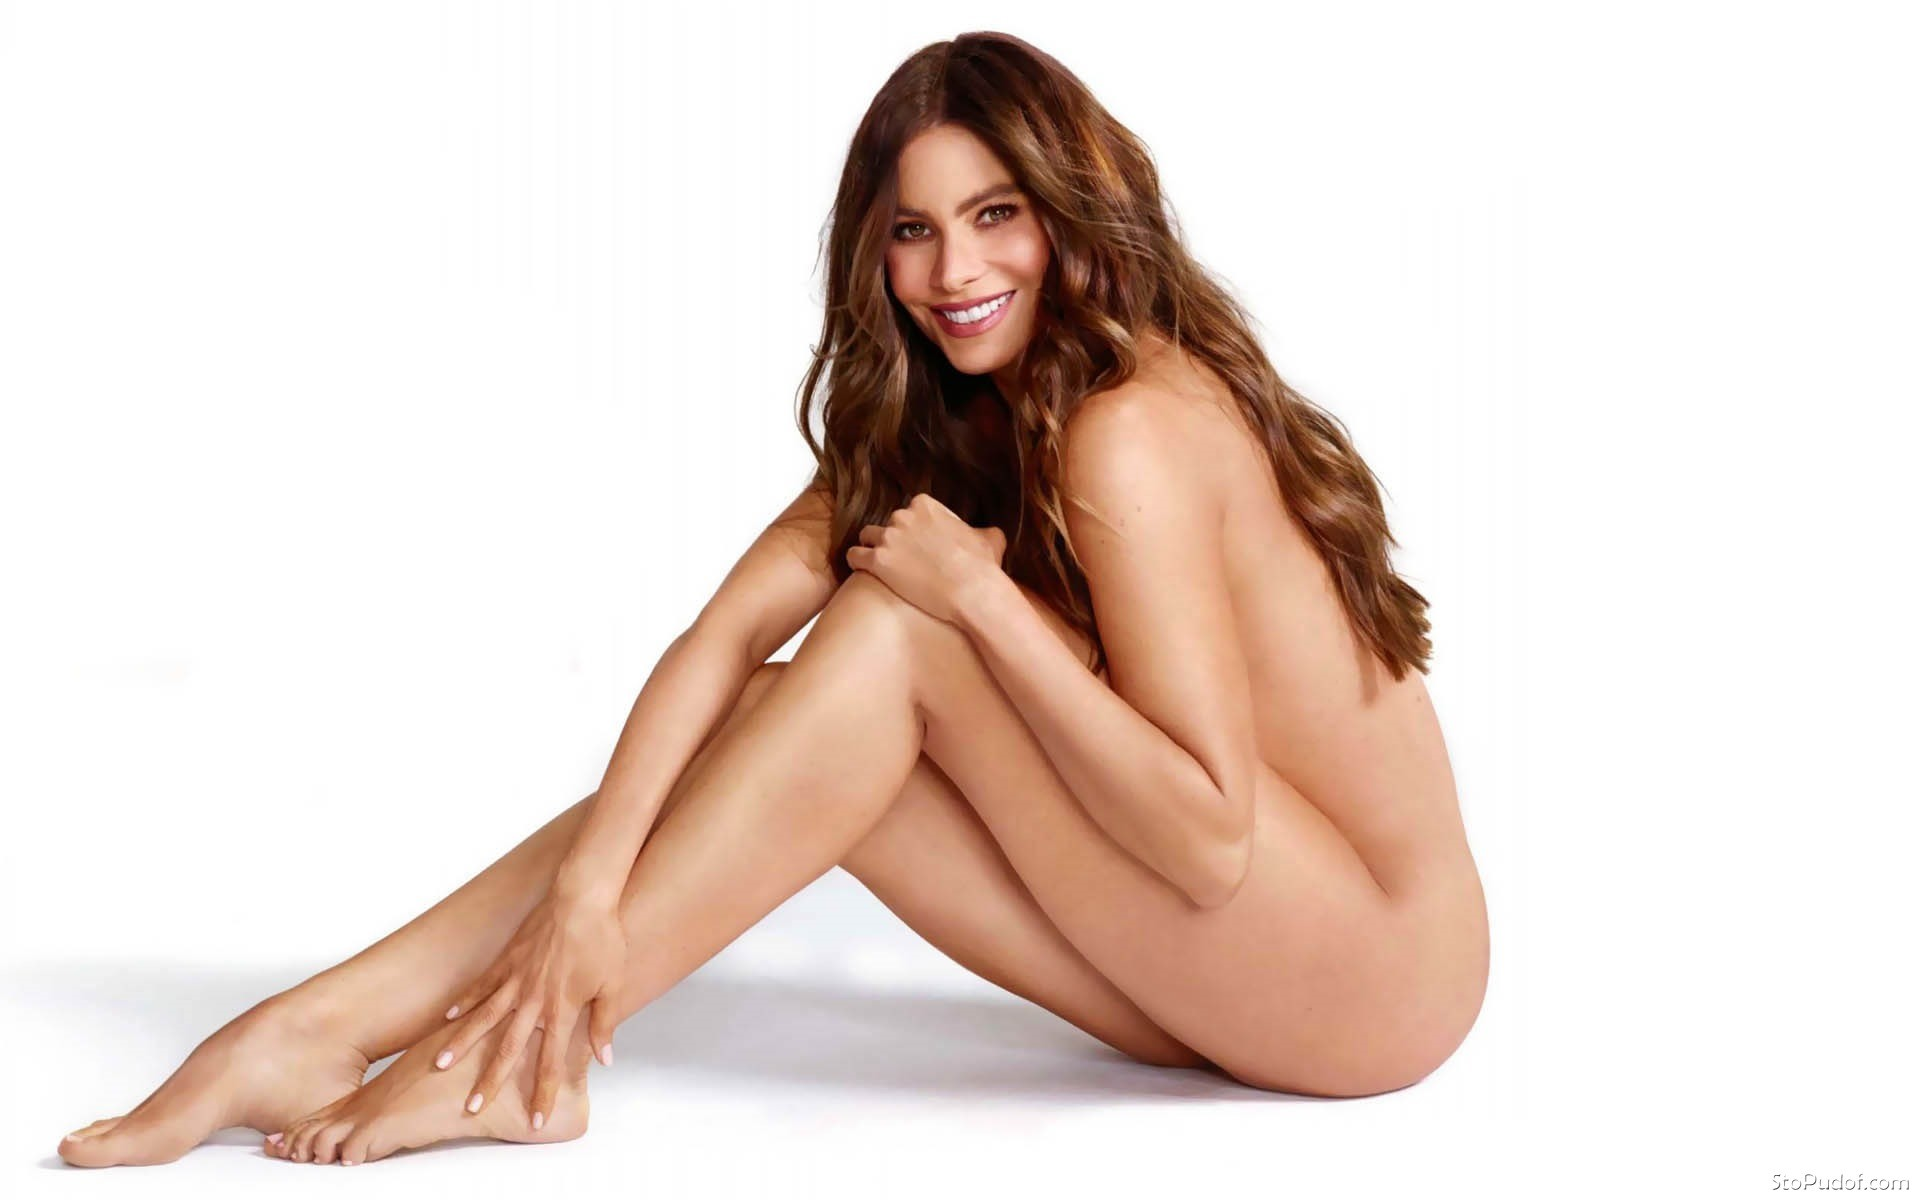 nude photos Sofia Vergara leaked - UkPhotoSafari